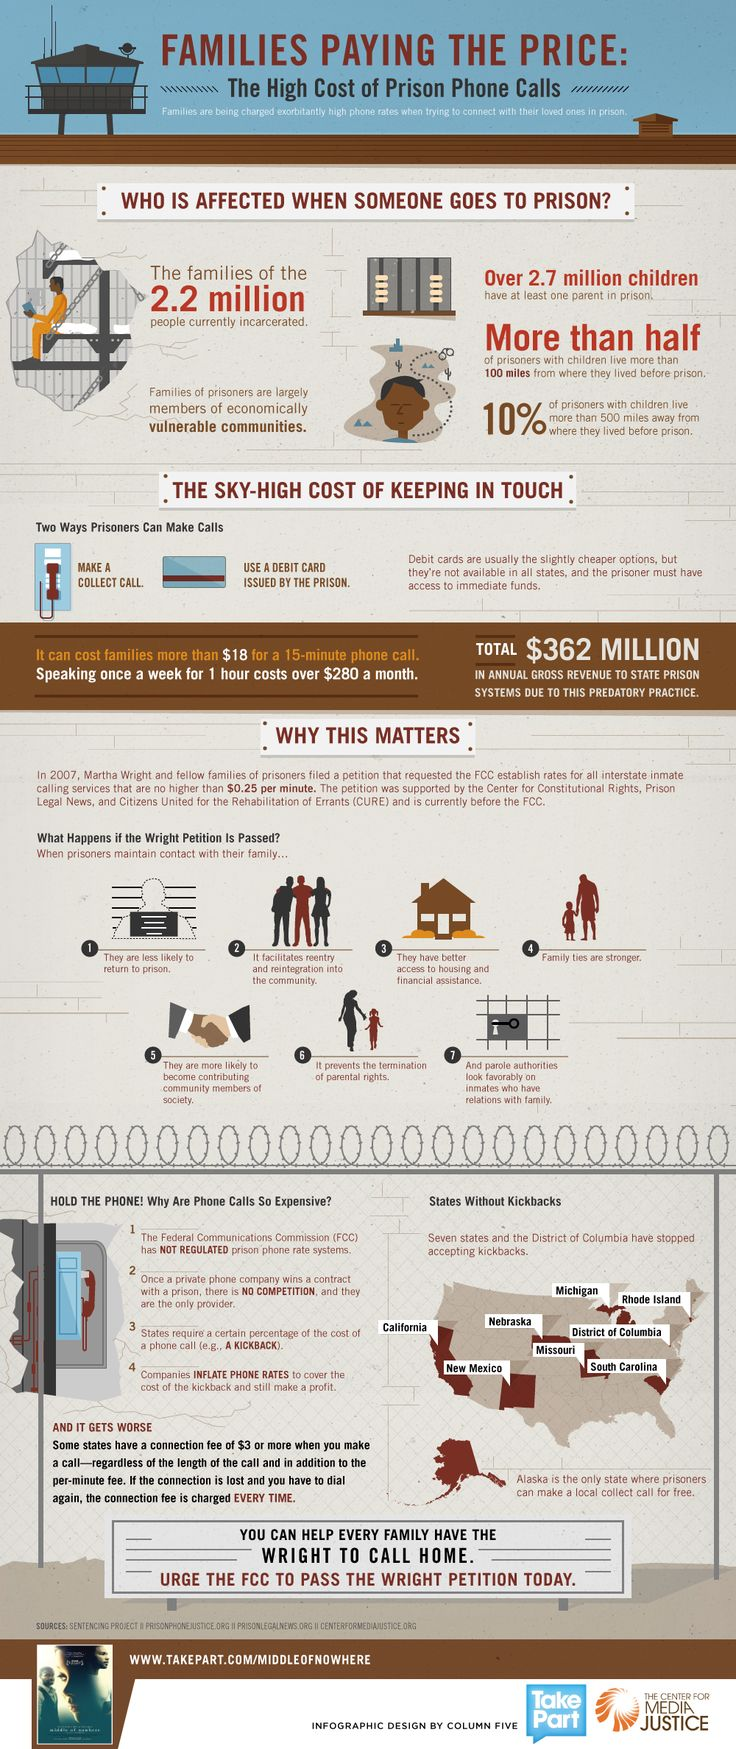 An Infographic On Families Paying a Price: The High Cost of Prison Phone Calls